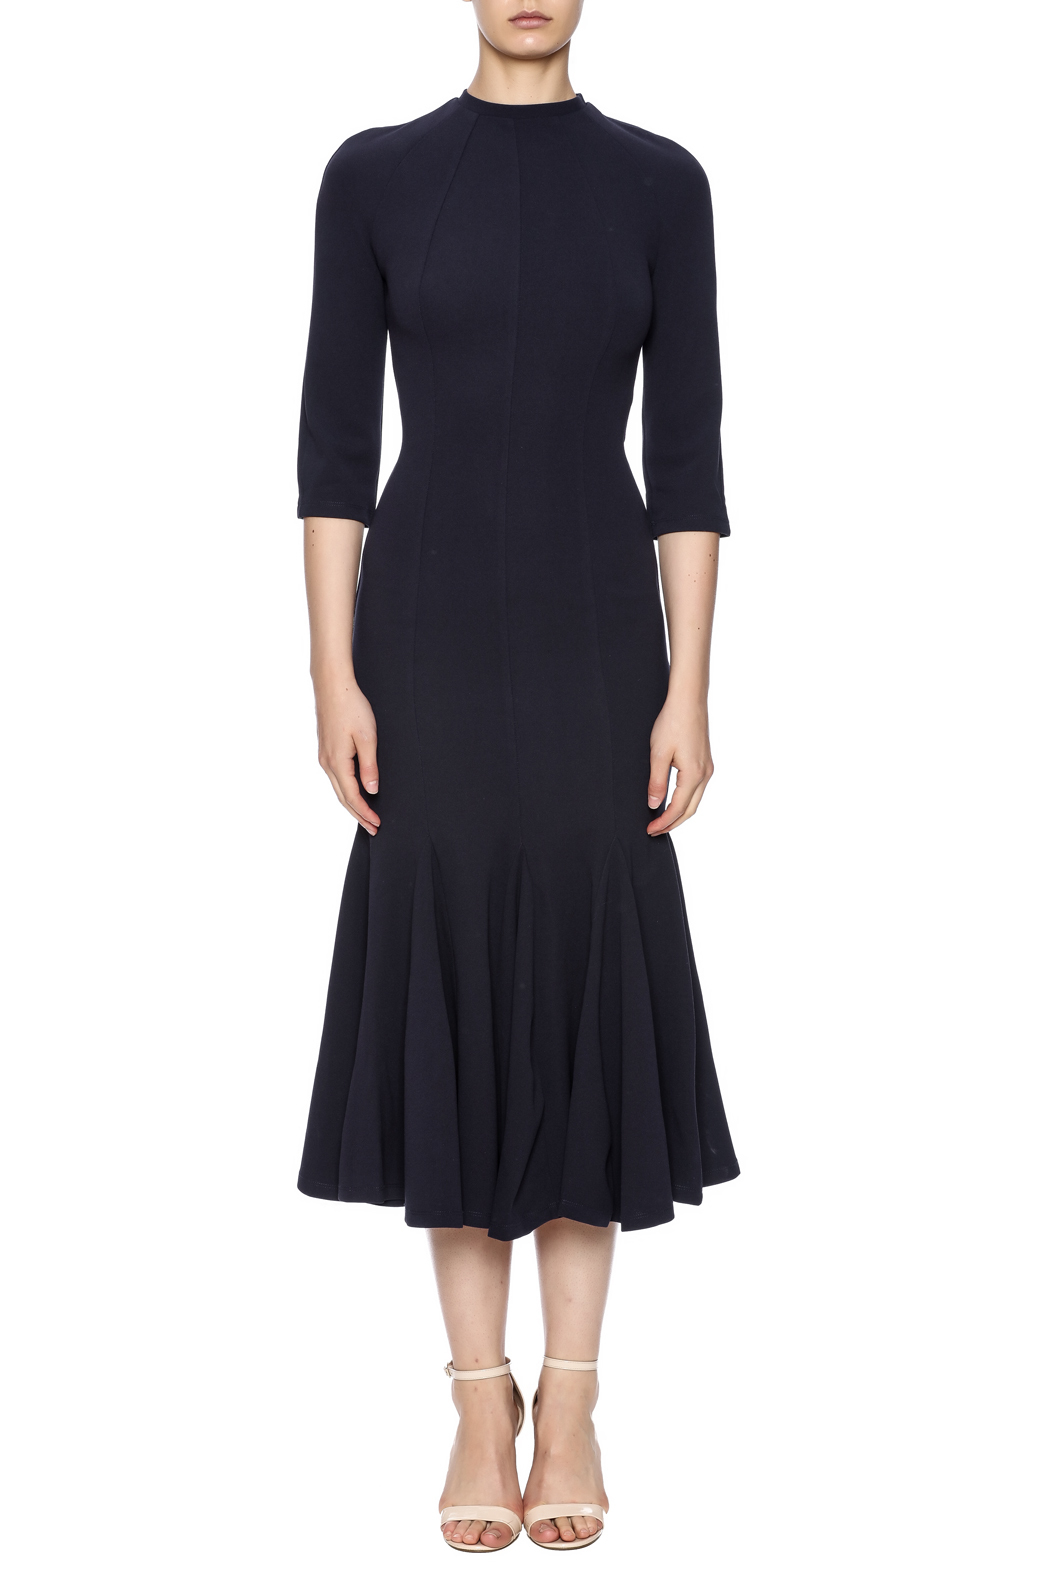 Isabel Garcia Curvy Cocktail Dress from New York by